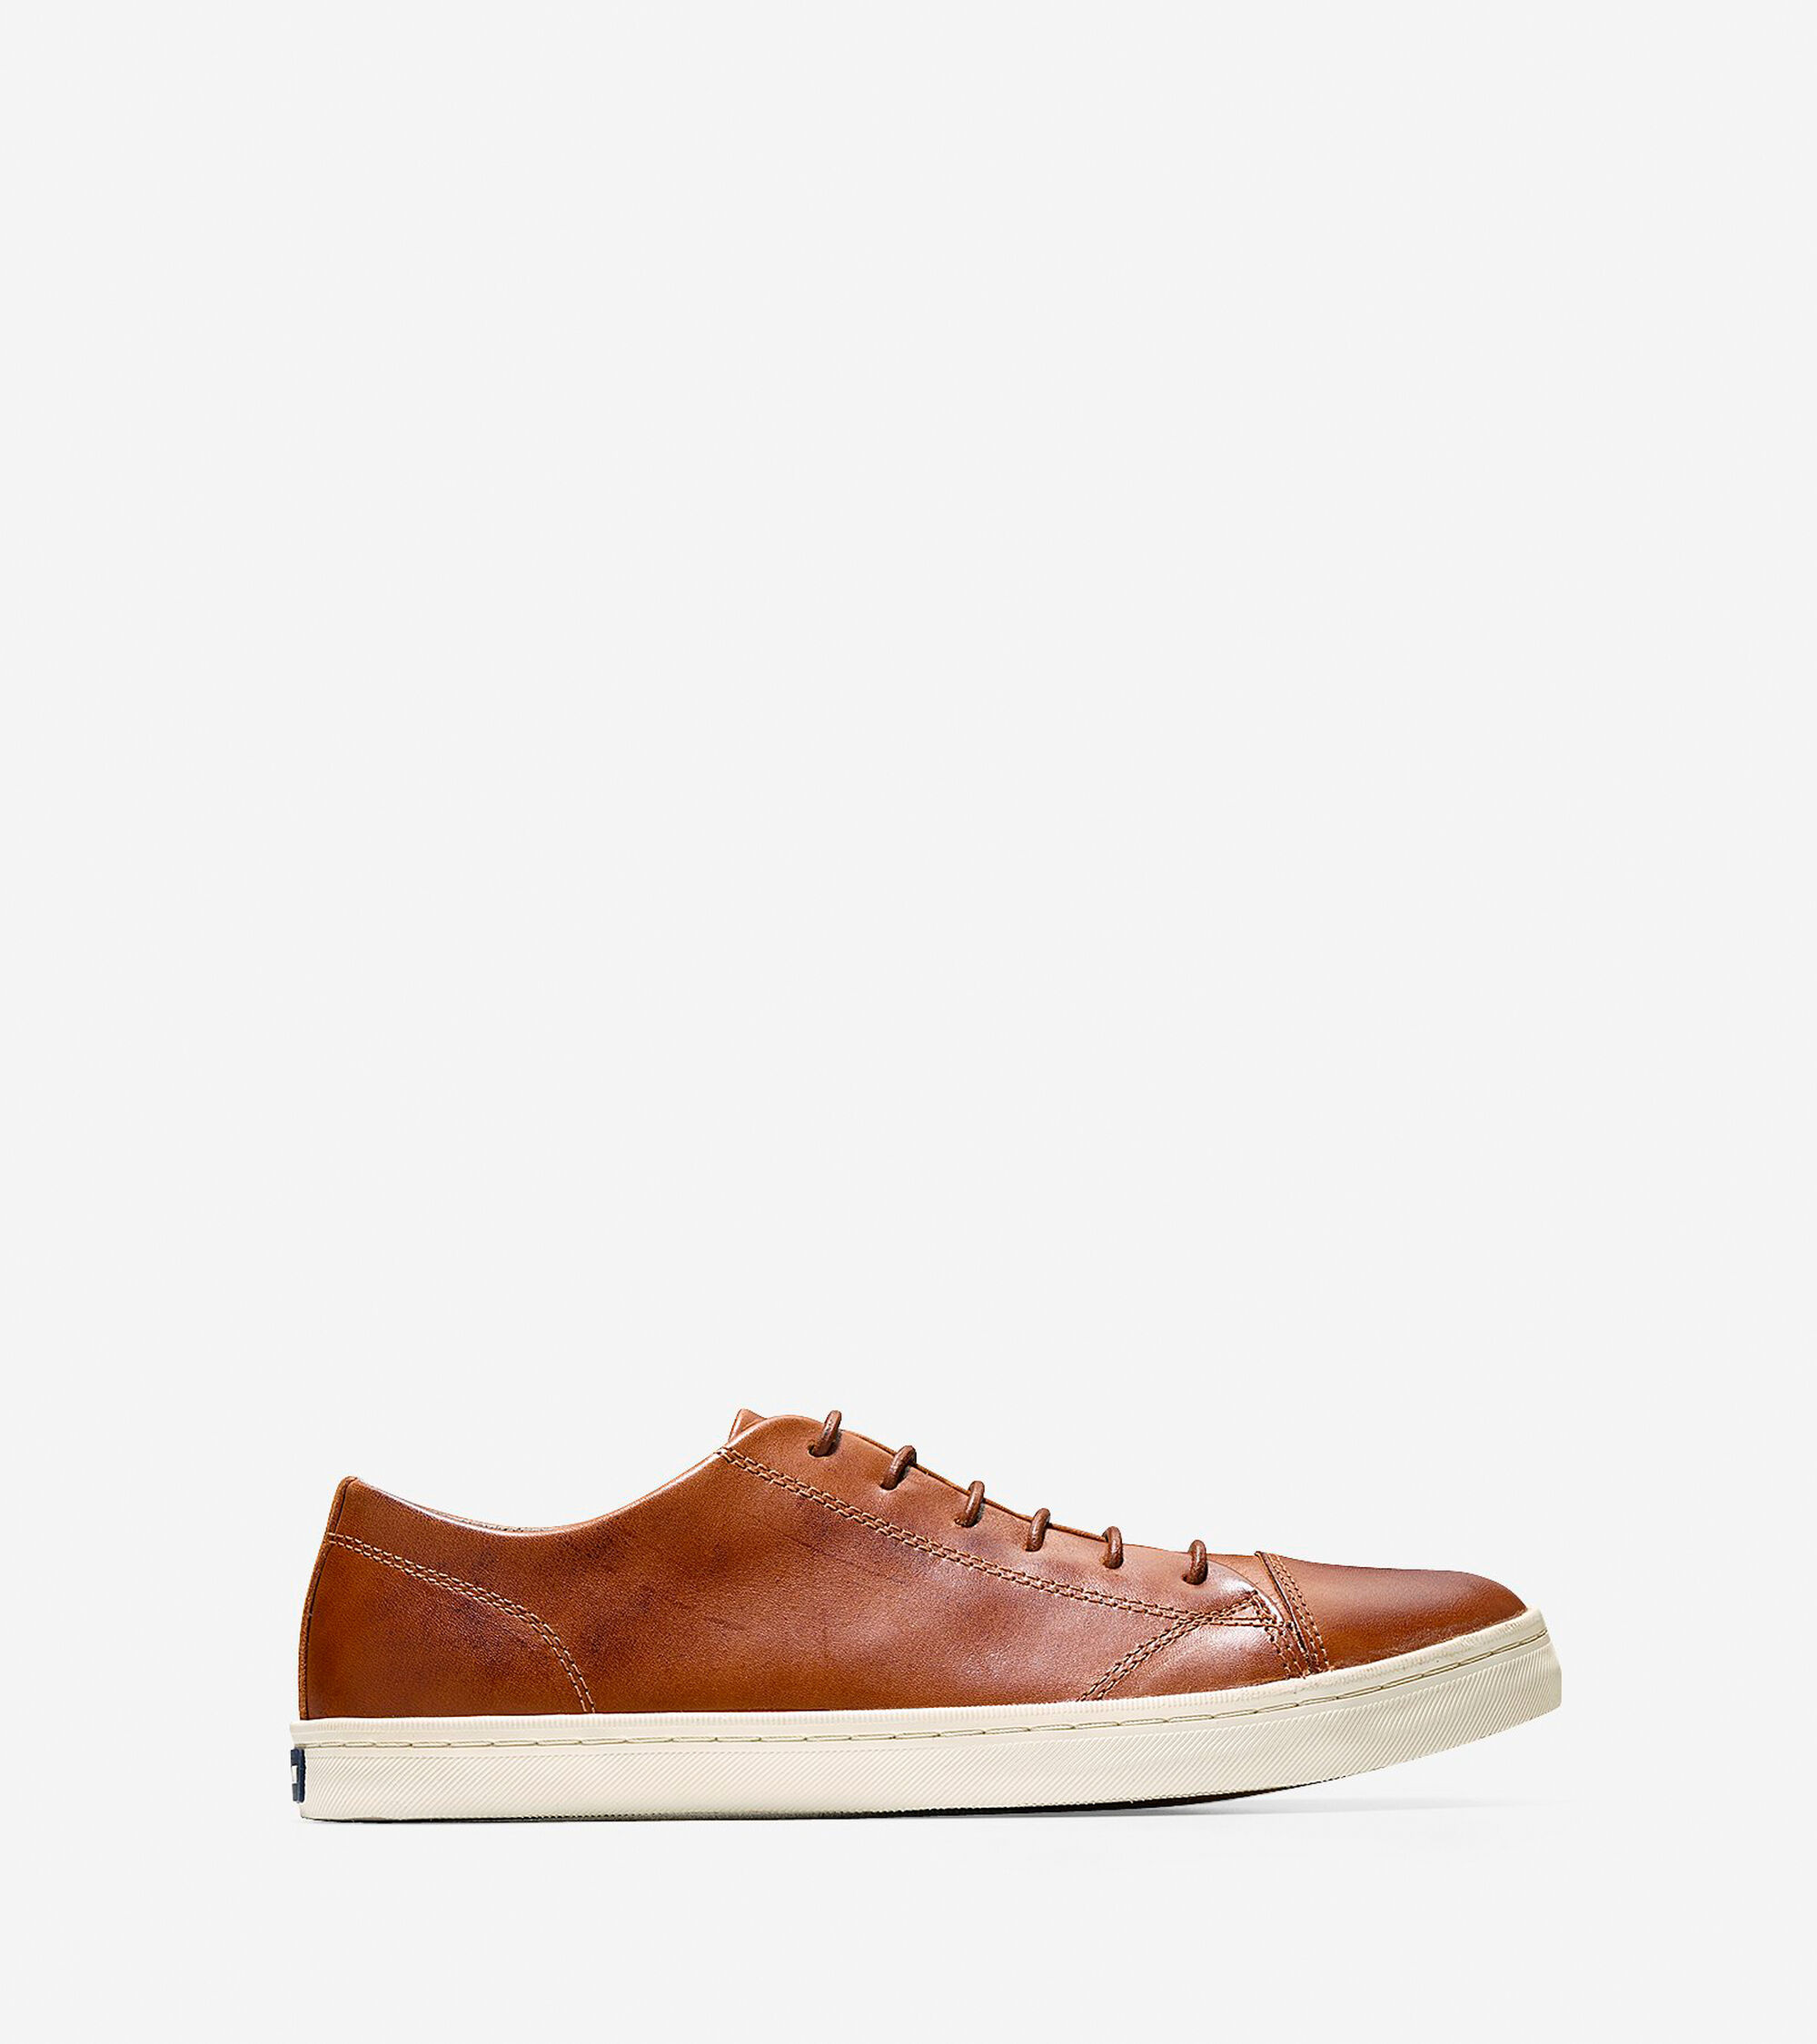 Sneakers > Trafton Luxe Cap Toe Oxford